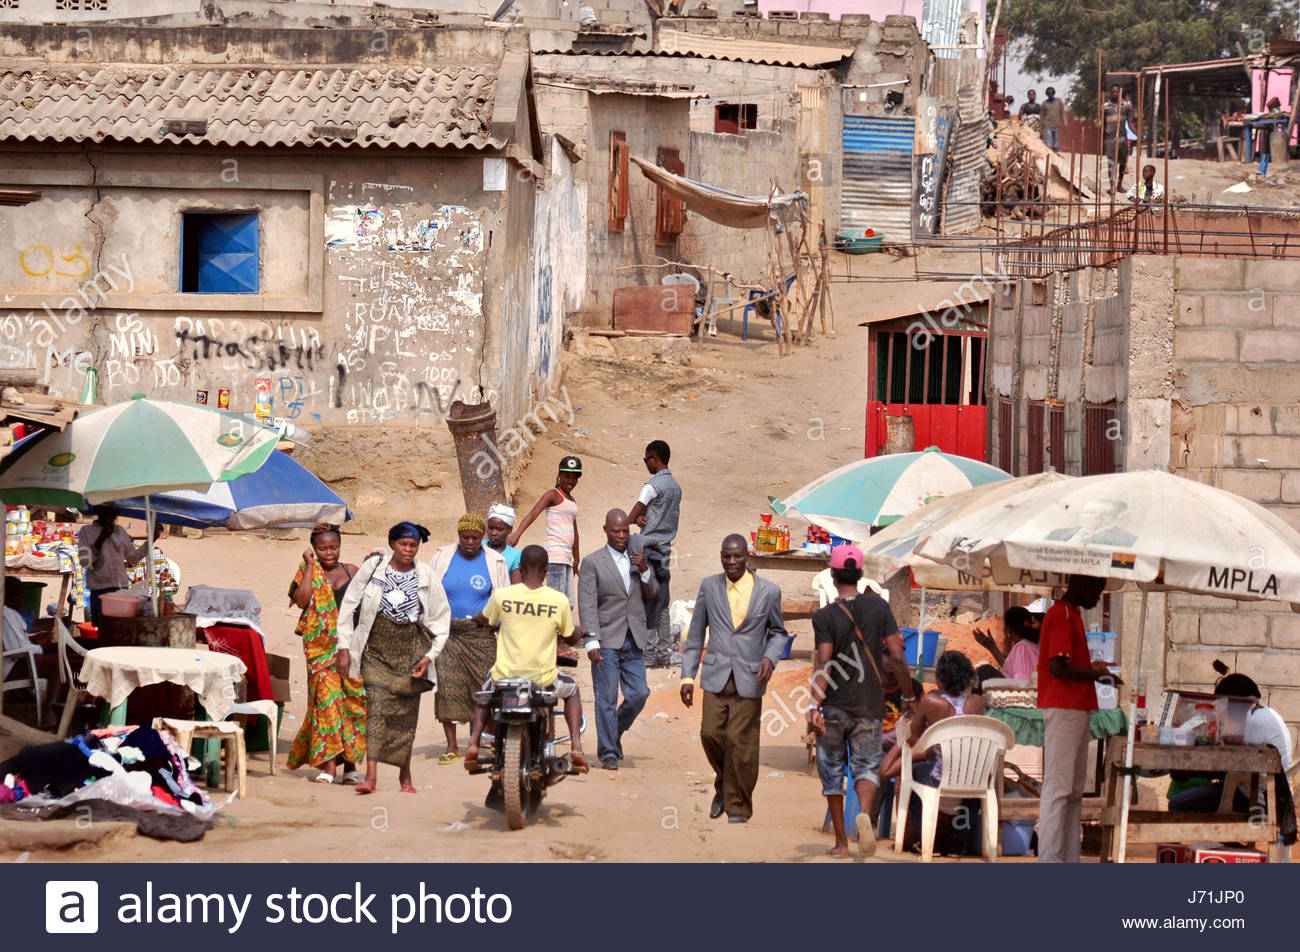 Luanda, Angola. 5th July, 2013. This typical street scene lies just outside the Capital city Luanda. This year marks - Stock Image